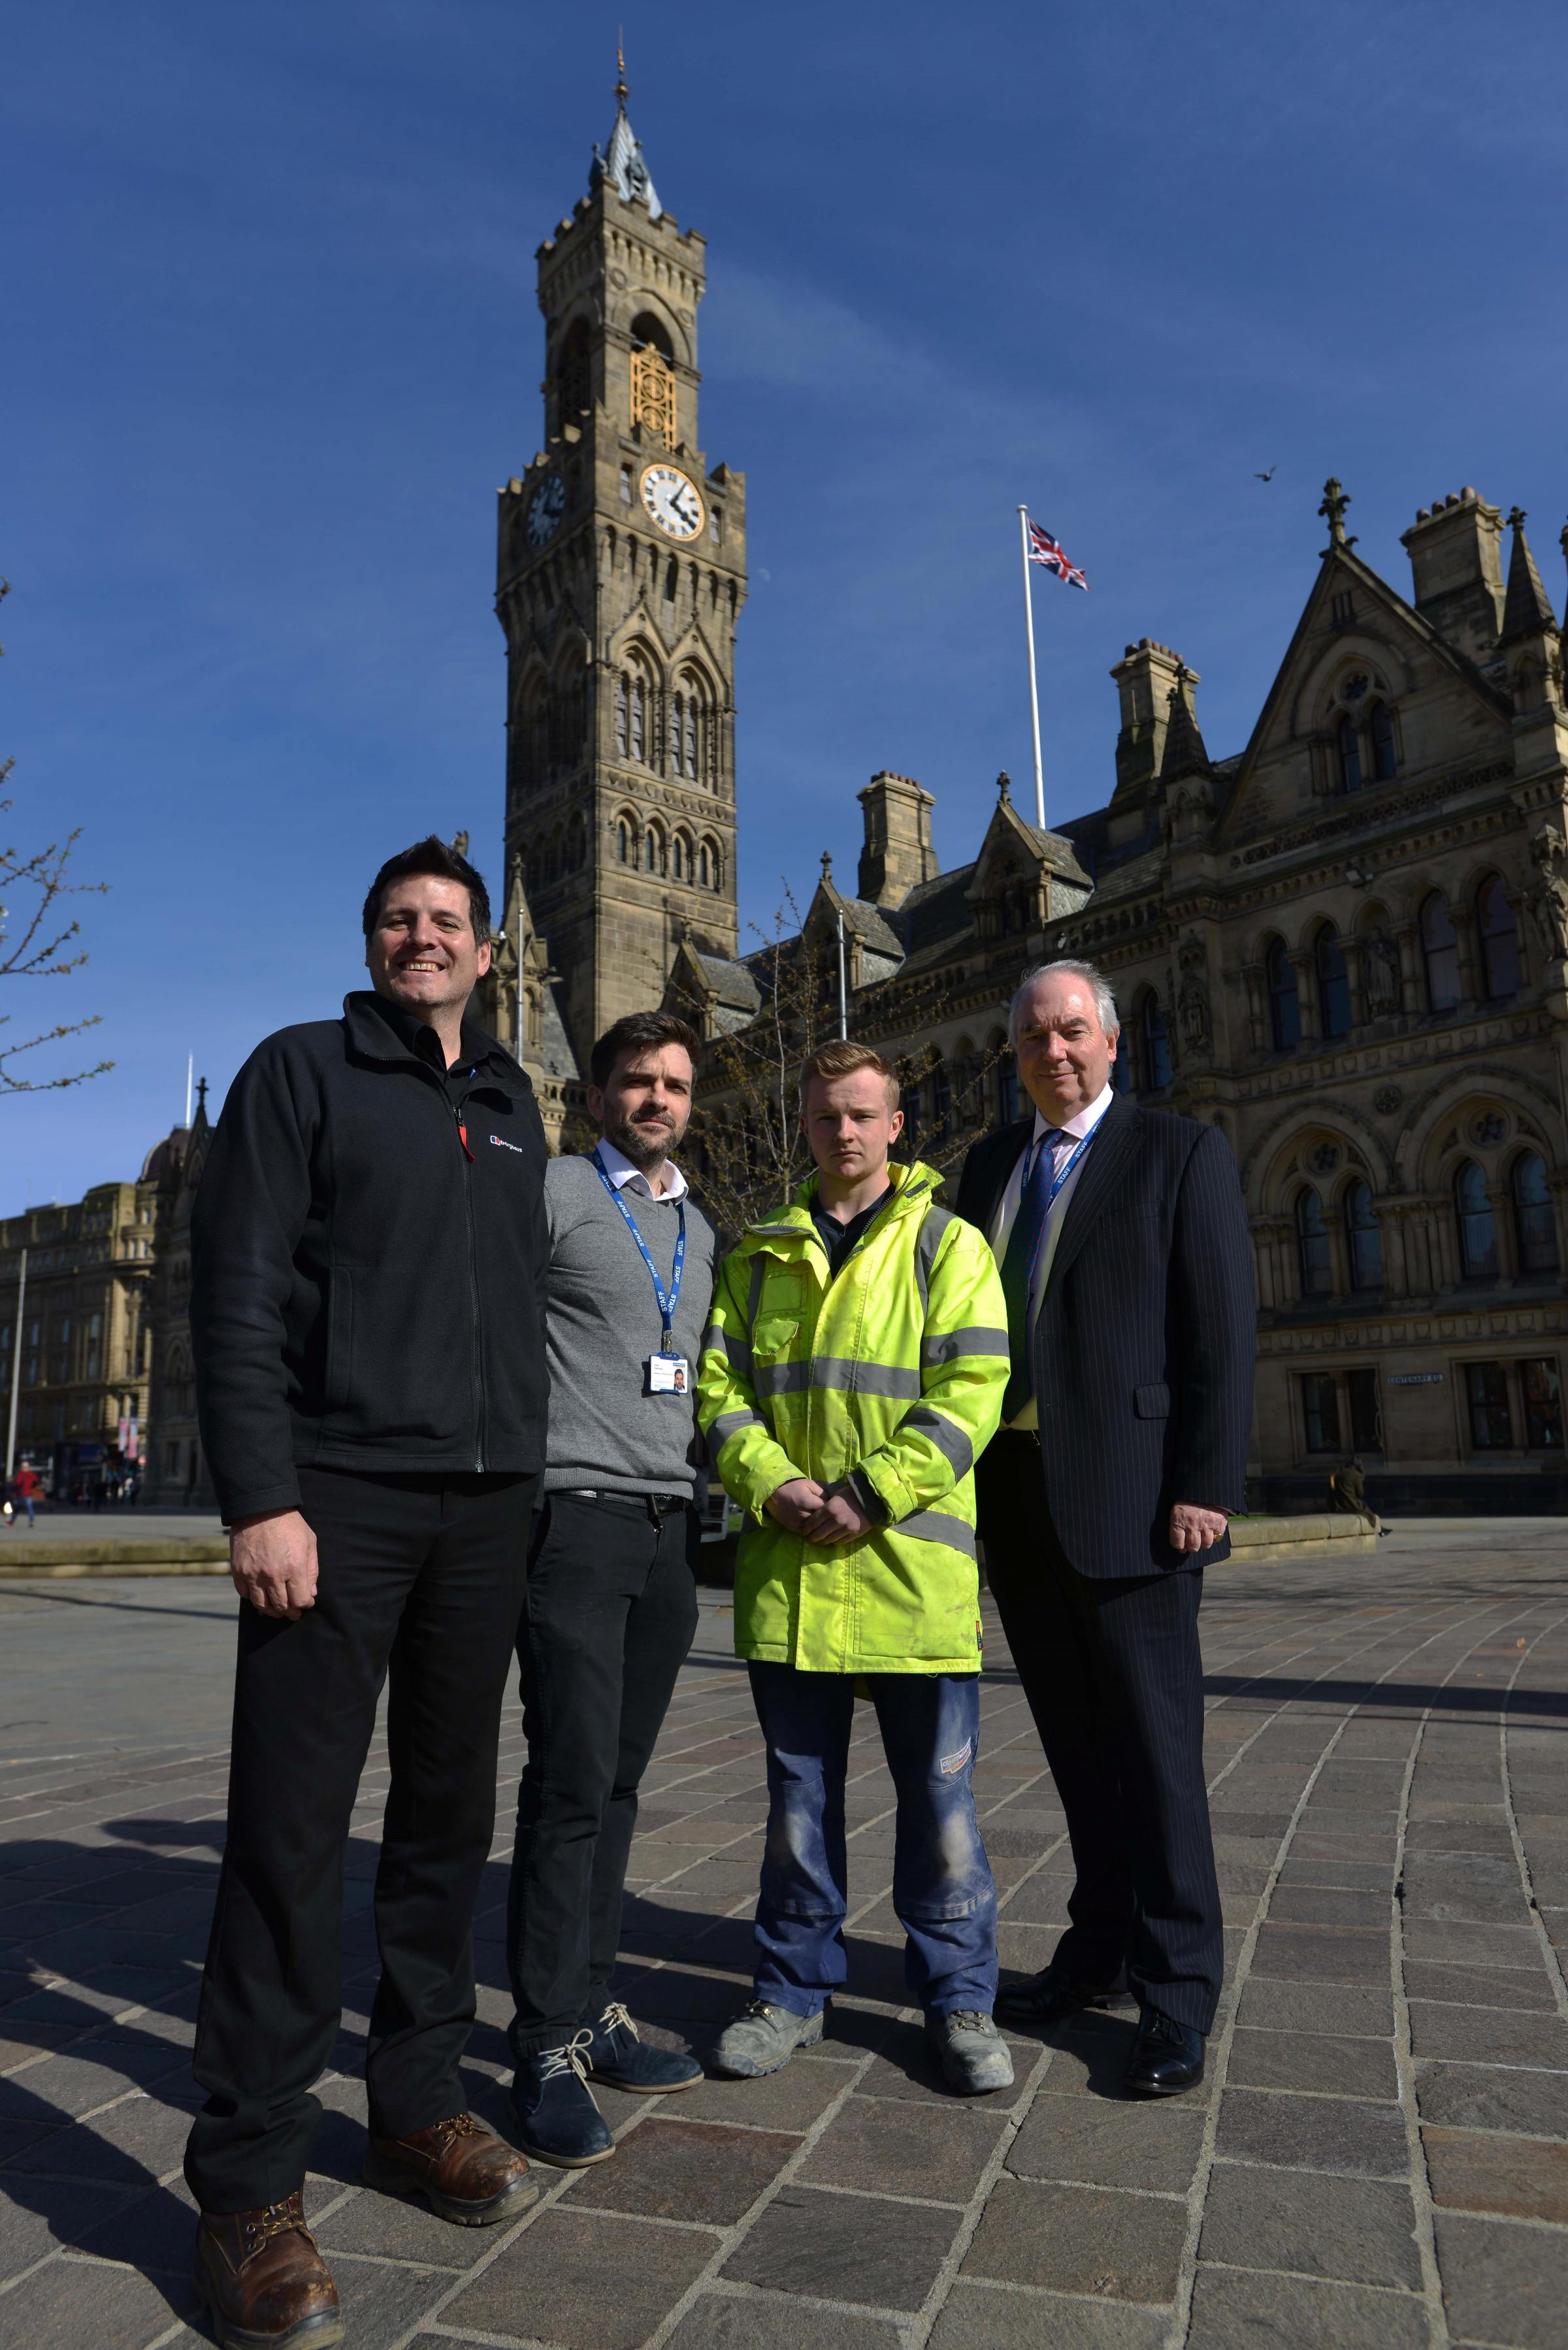 Steve Aldeguer, project manager, Julian Chancellor, senior building surveyor, Billy Aykroyd, apprentice bricklayer, and Ben Middleton, assistant director for estates and property, in front of City Hall after its £4 million restoration is completed